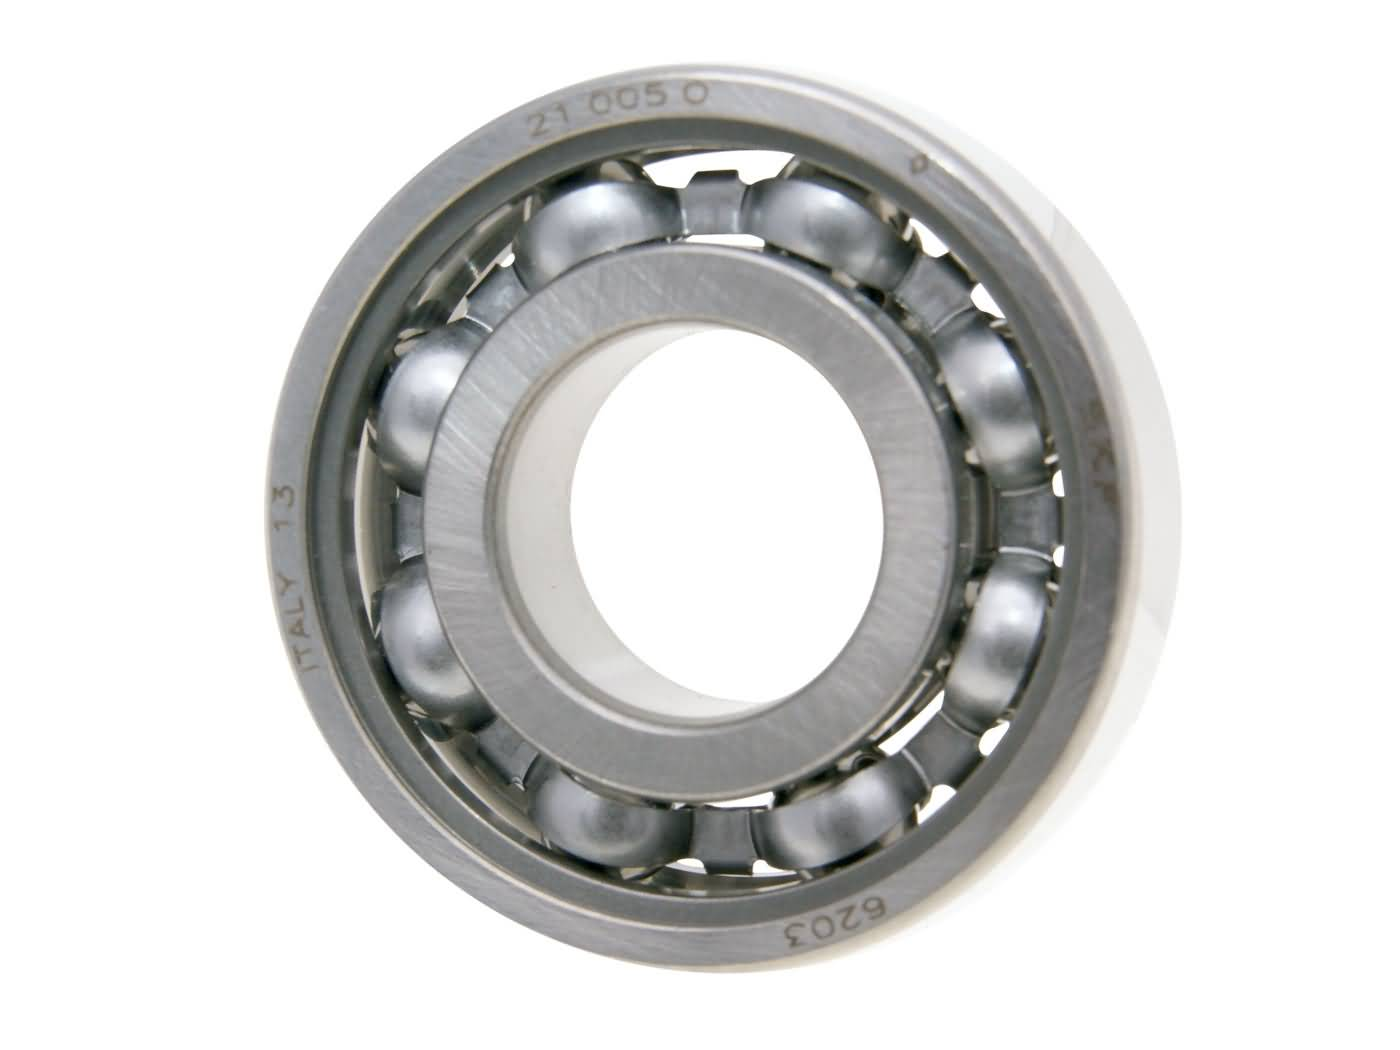 Primary Gear Shaft Bearing (6203)